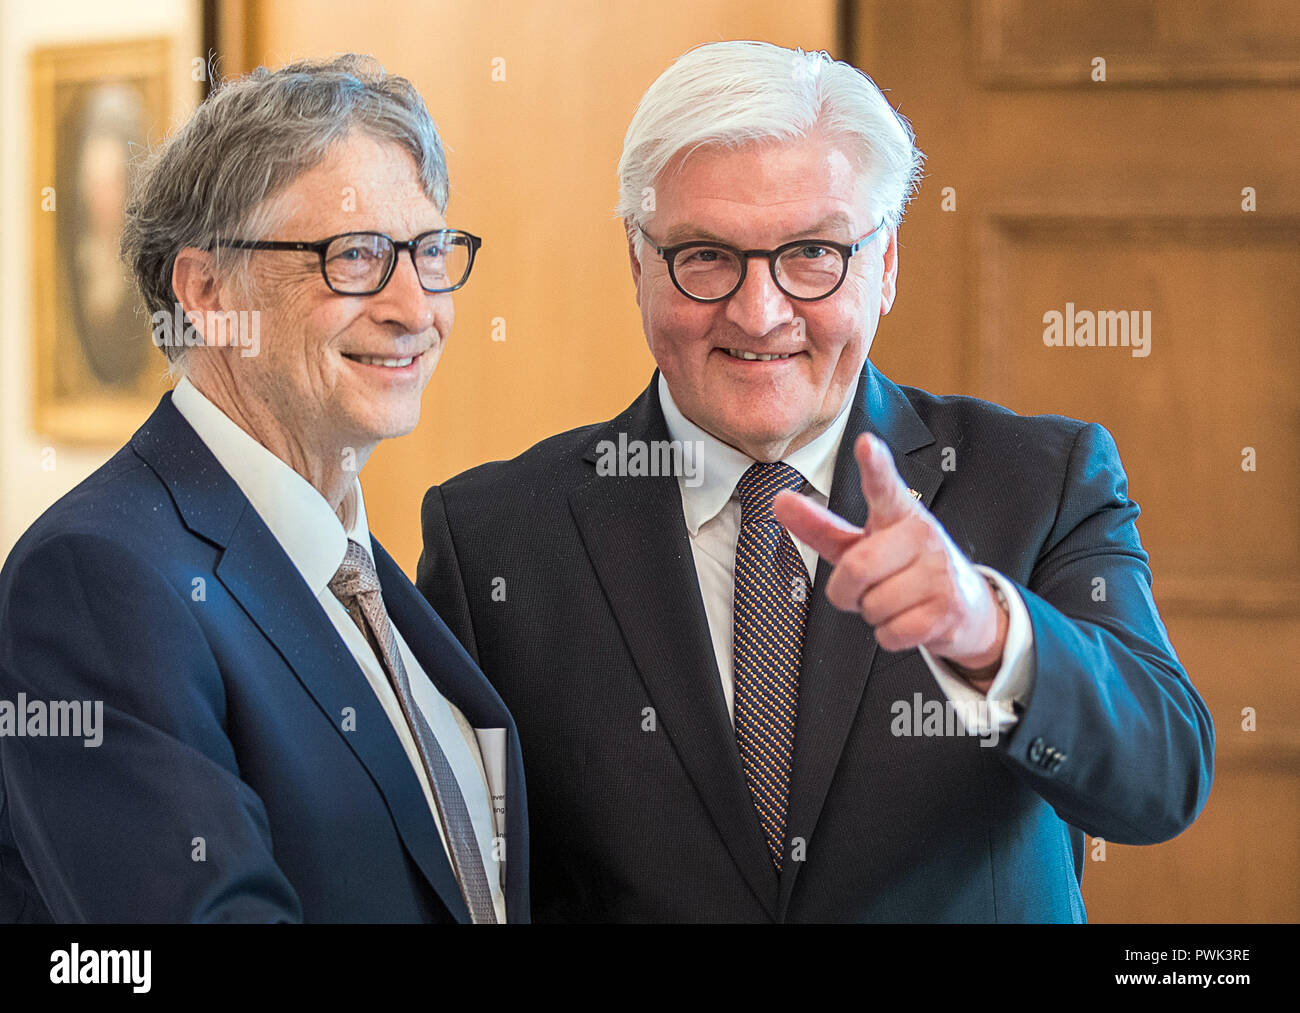 Berlin, Germany. 16th October, 2018. 16 October 2018, Berlin: 16 October 2018, Germany, Berlin: Federal President Frank-Walter Steinmeier (R) welcomes Microsoft founder Bill Gates for an interview at Schloss Bellevue. The Microsoft founder is currently in Berlin for the annual meeting of the charitable initiative 'Grand Challenges', which he co-founded. Photo: Jens Büttner/dpa-Zentralbild/dpa Credit: dpa picture alliance/Alamy Live News - Stock Image